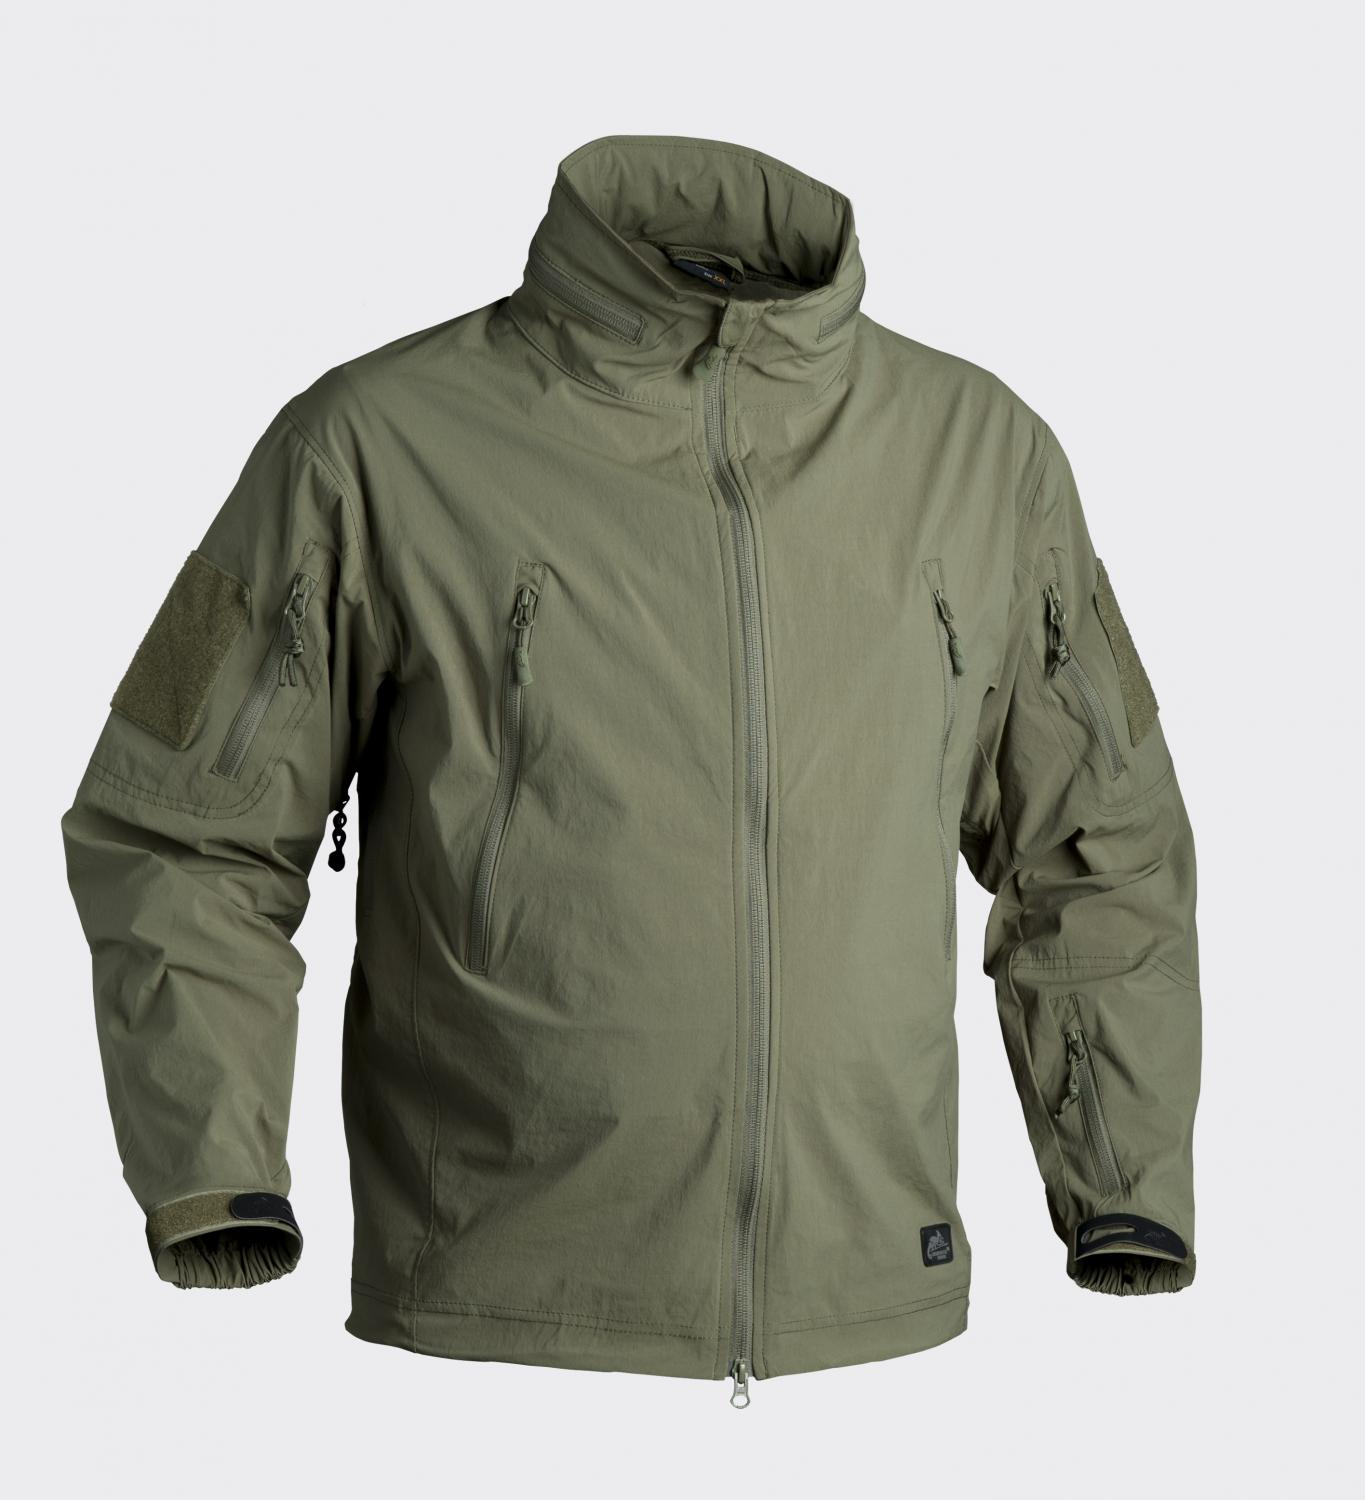 TROOPER - SoftShell Olive Green